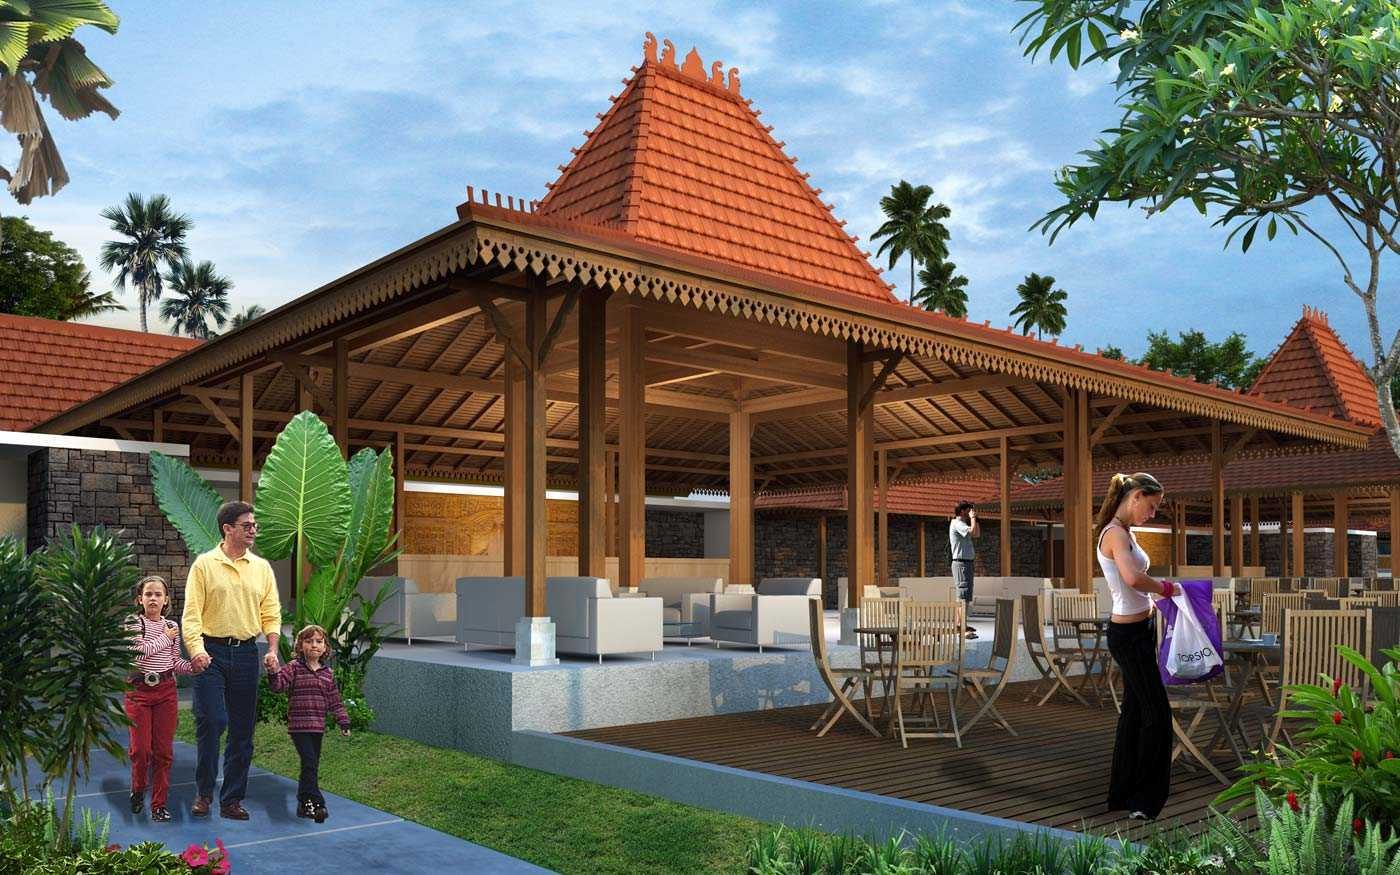 CARDIA architect di Klungkung